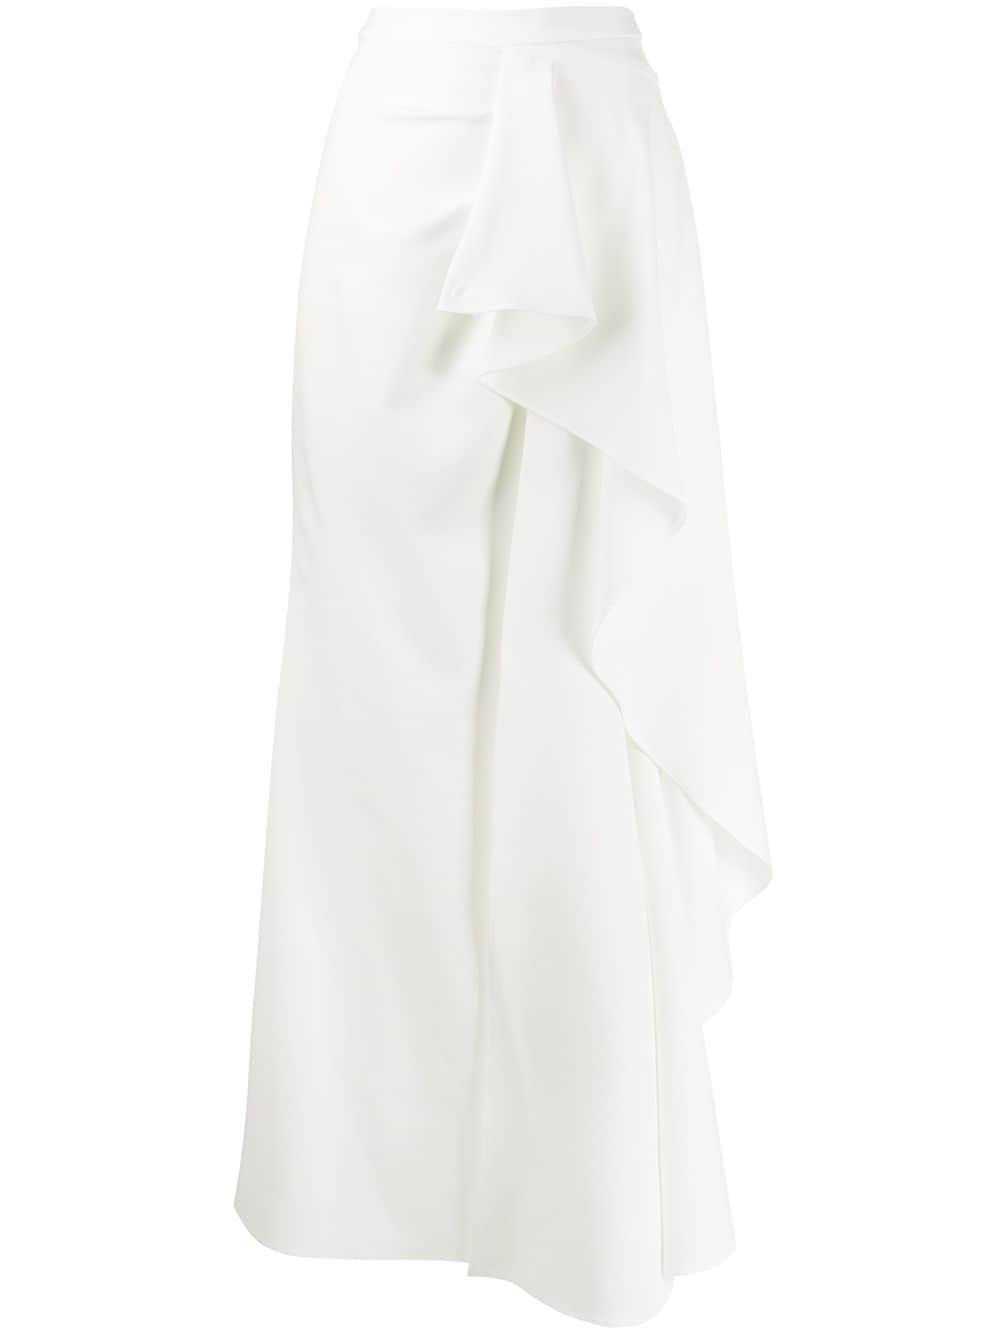 Avaro Figlio asymmetric draped detail skirt